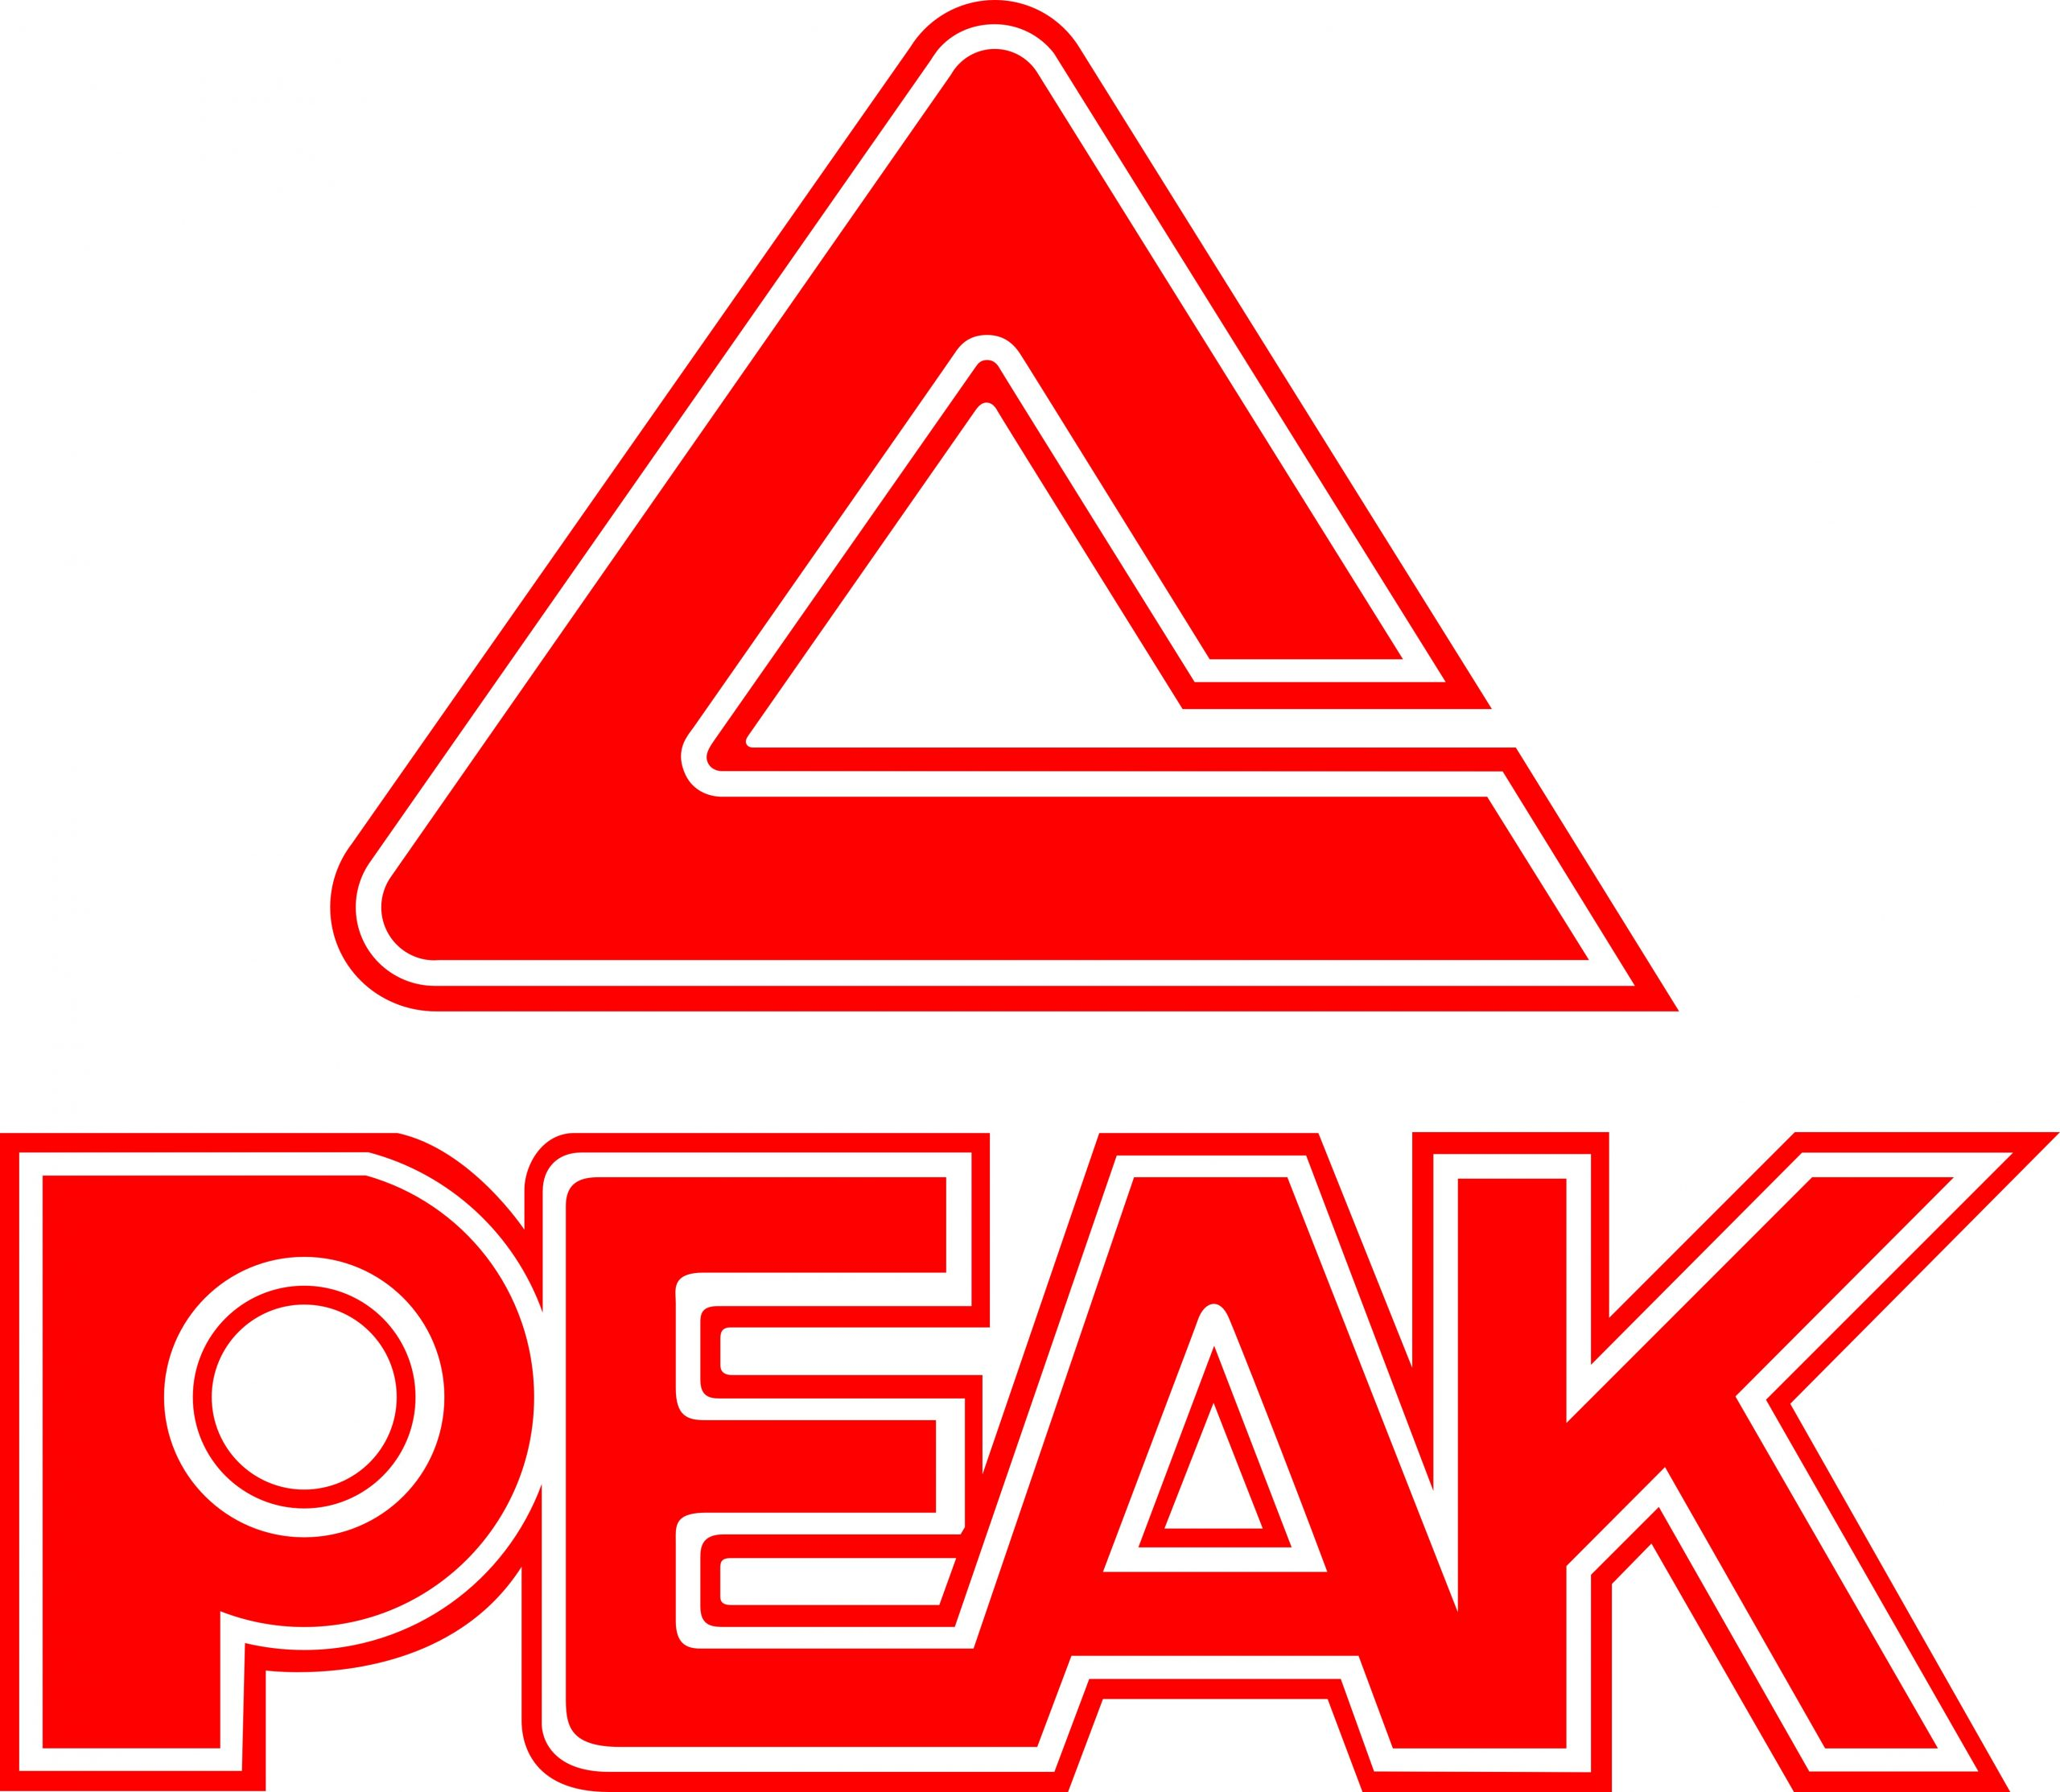 PEAK with triangle